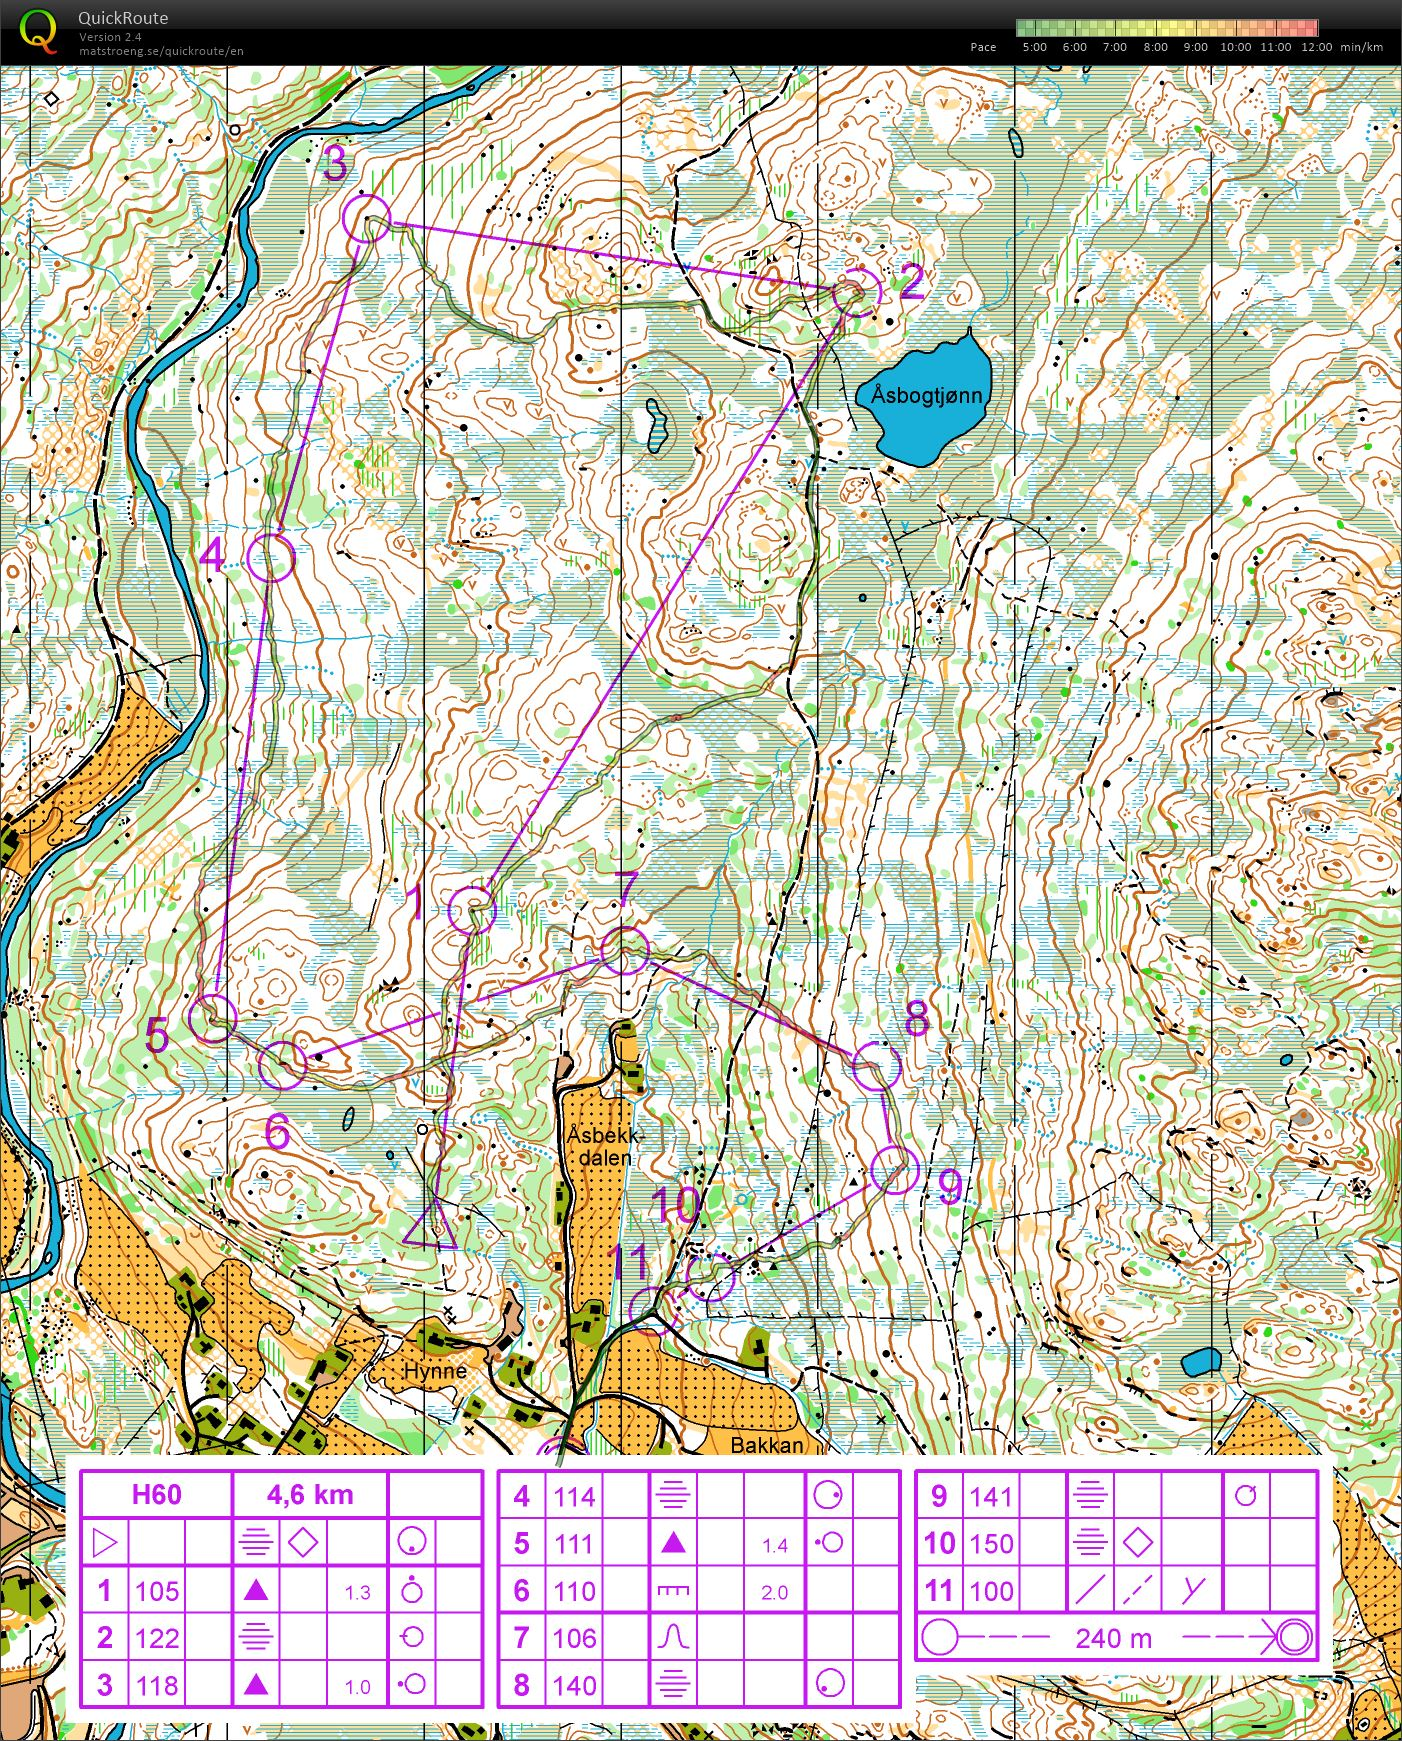 Re-run of H60 Long course from VM in Rauland (12/10/2017)